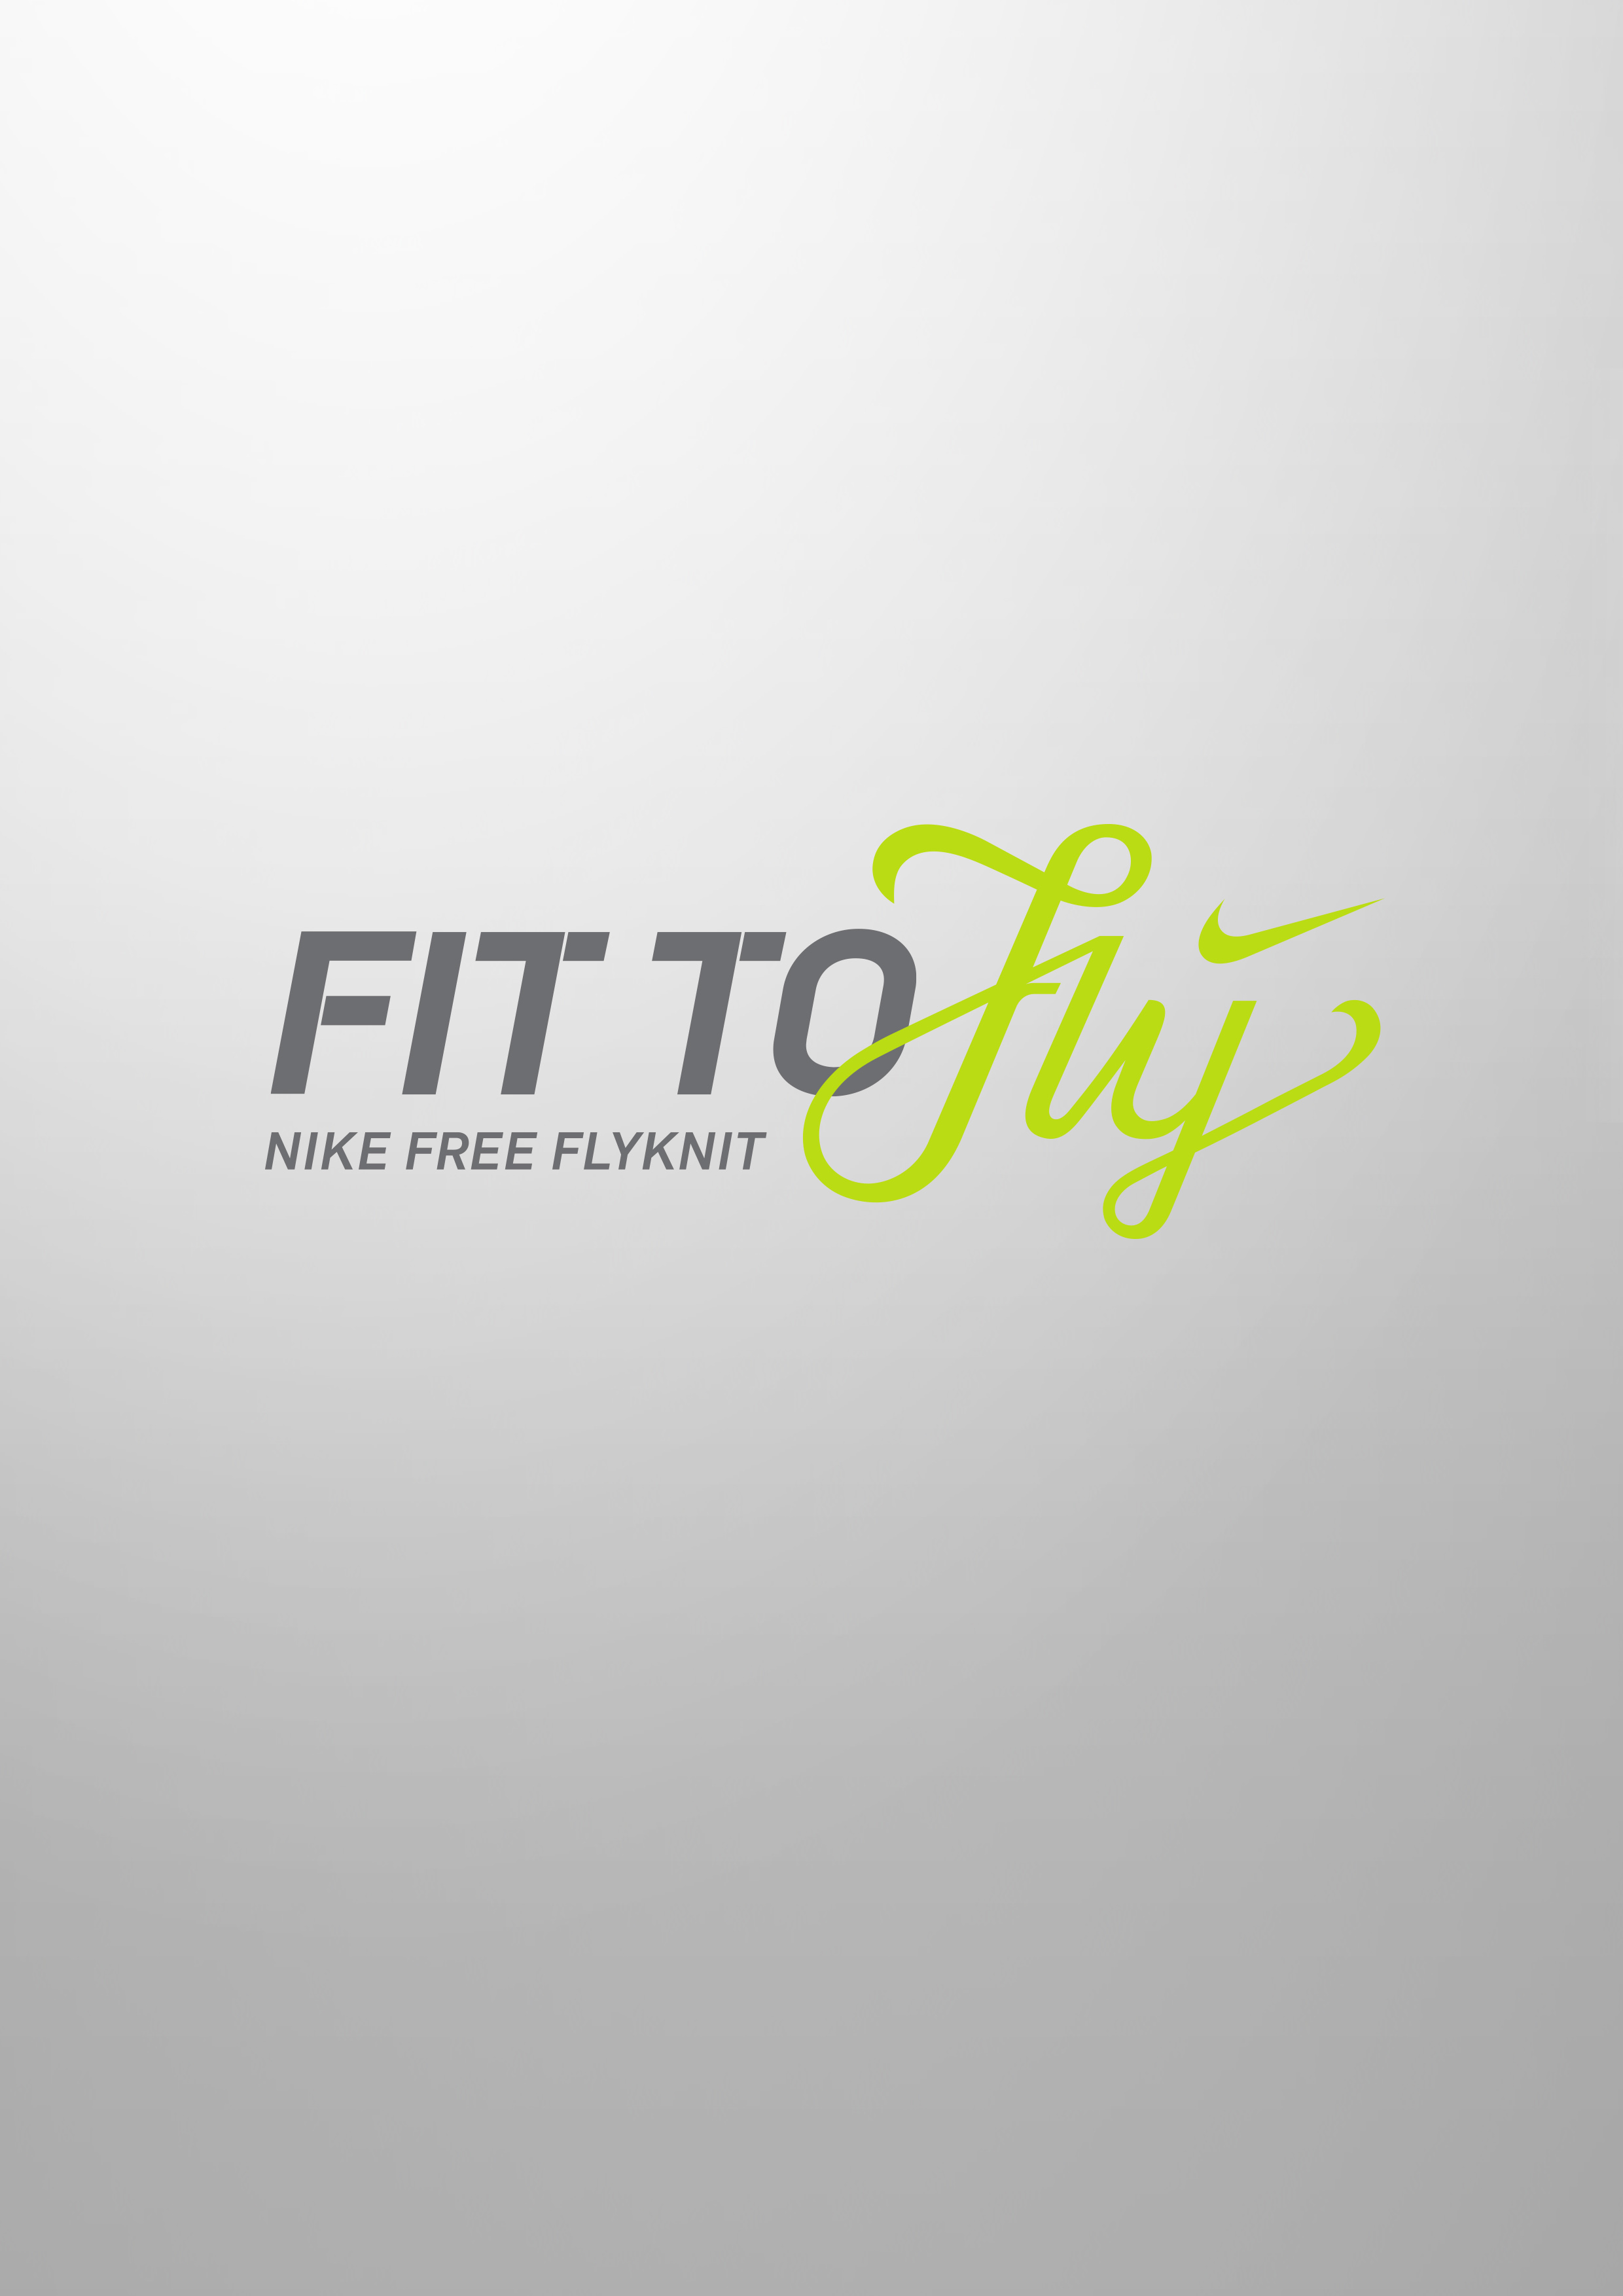 NIKE_Fit To fly